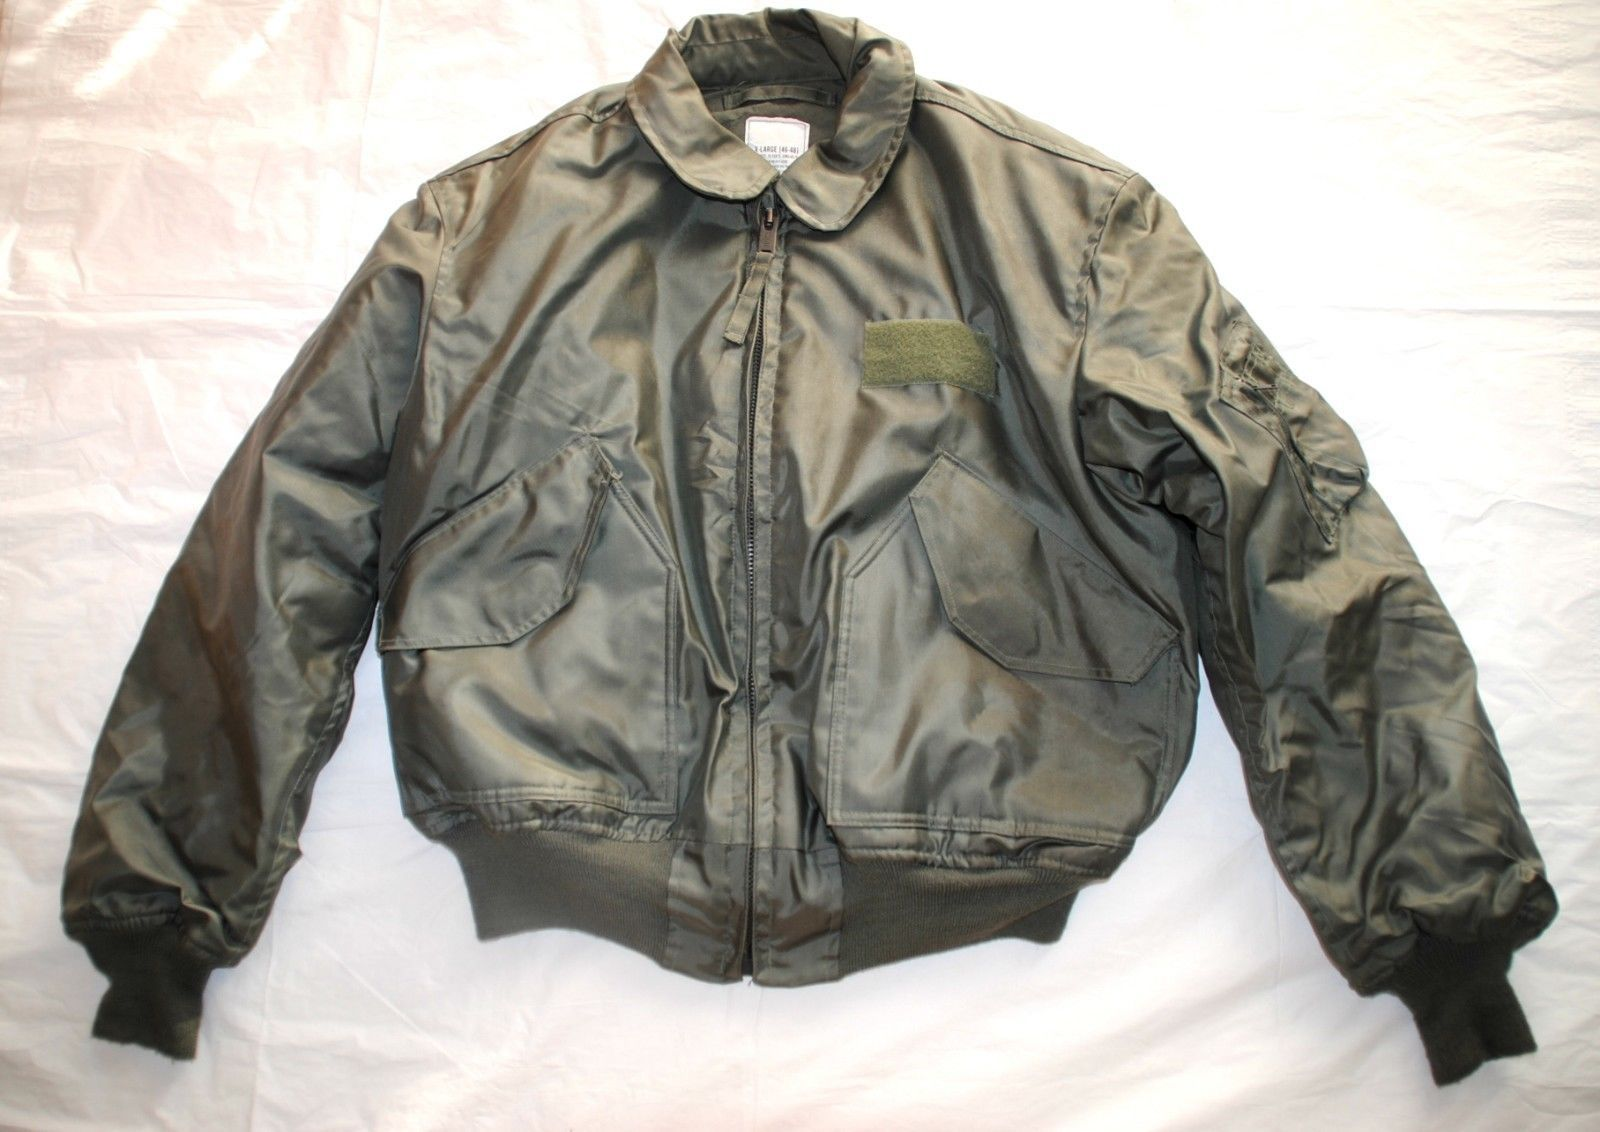 971e4130b0e S l1600. S l1600. Previous. USAF GREEN NOMEX FIRE RESISTANT COLD WEATHER  FLYERS JACKET CWU-45 P - X